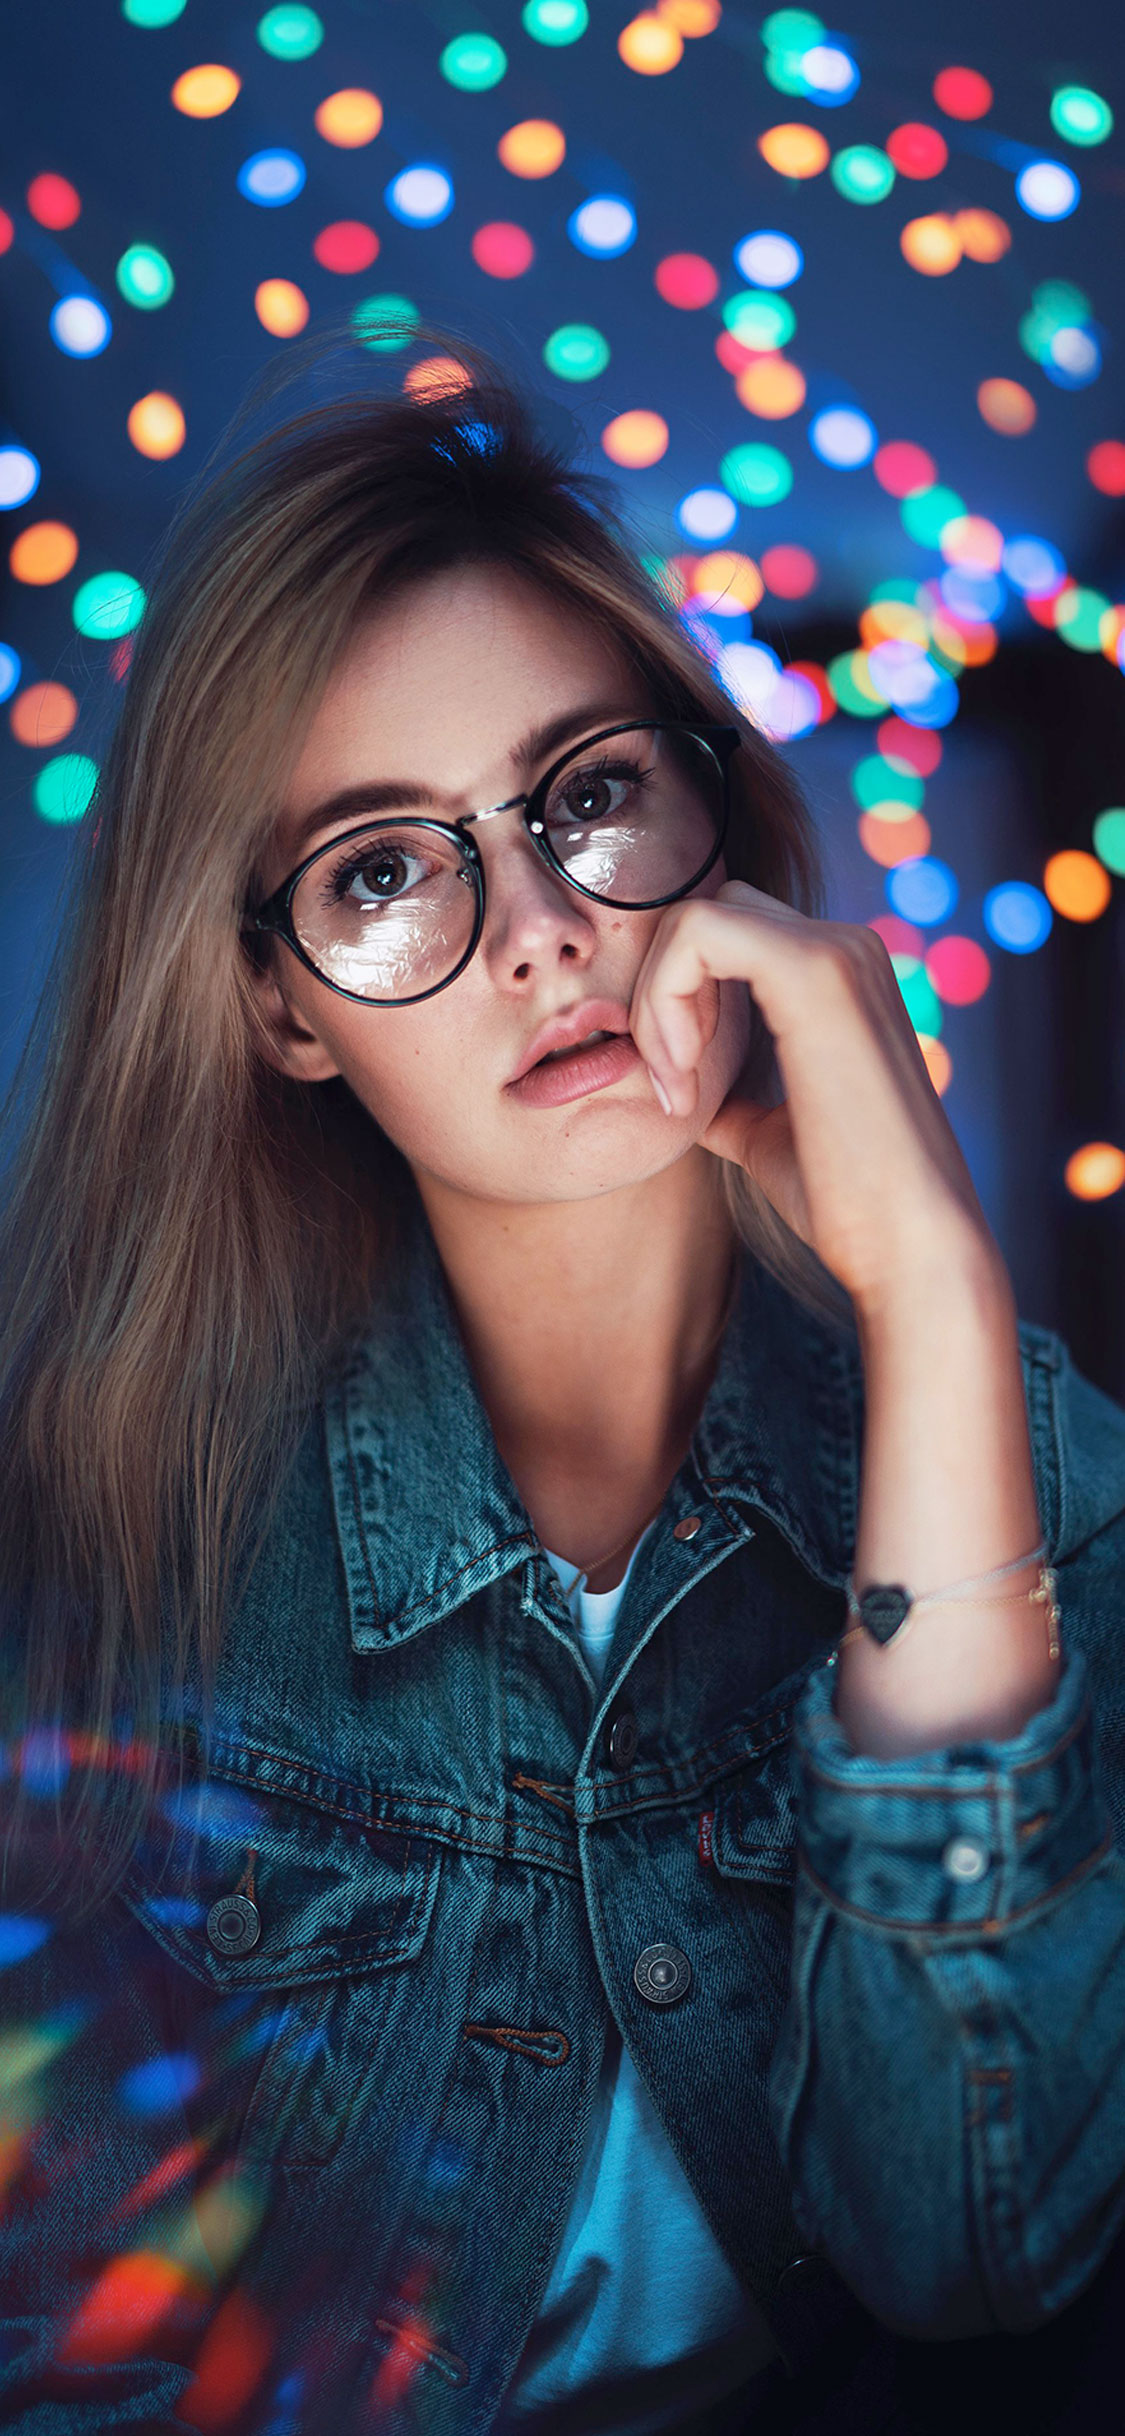 Girls Wallpapers For Iphone Beautiful Girl Apple Iphone - Iphone Girl Wallpaper Hd , HD Wallpaper & Backgrounds